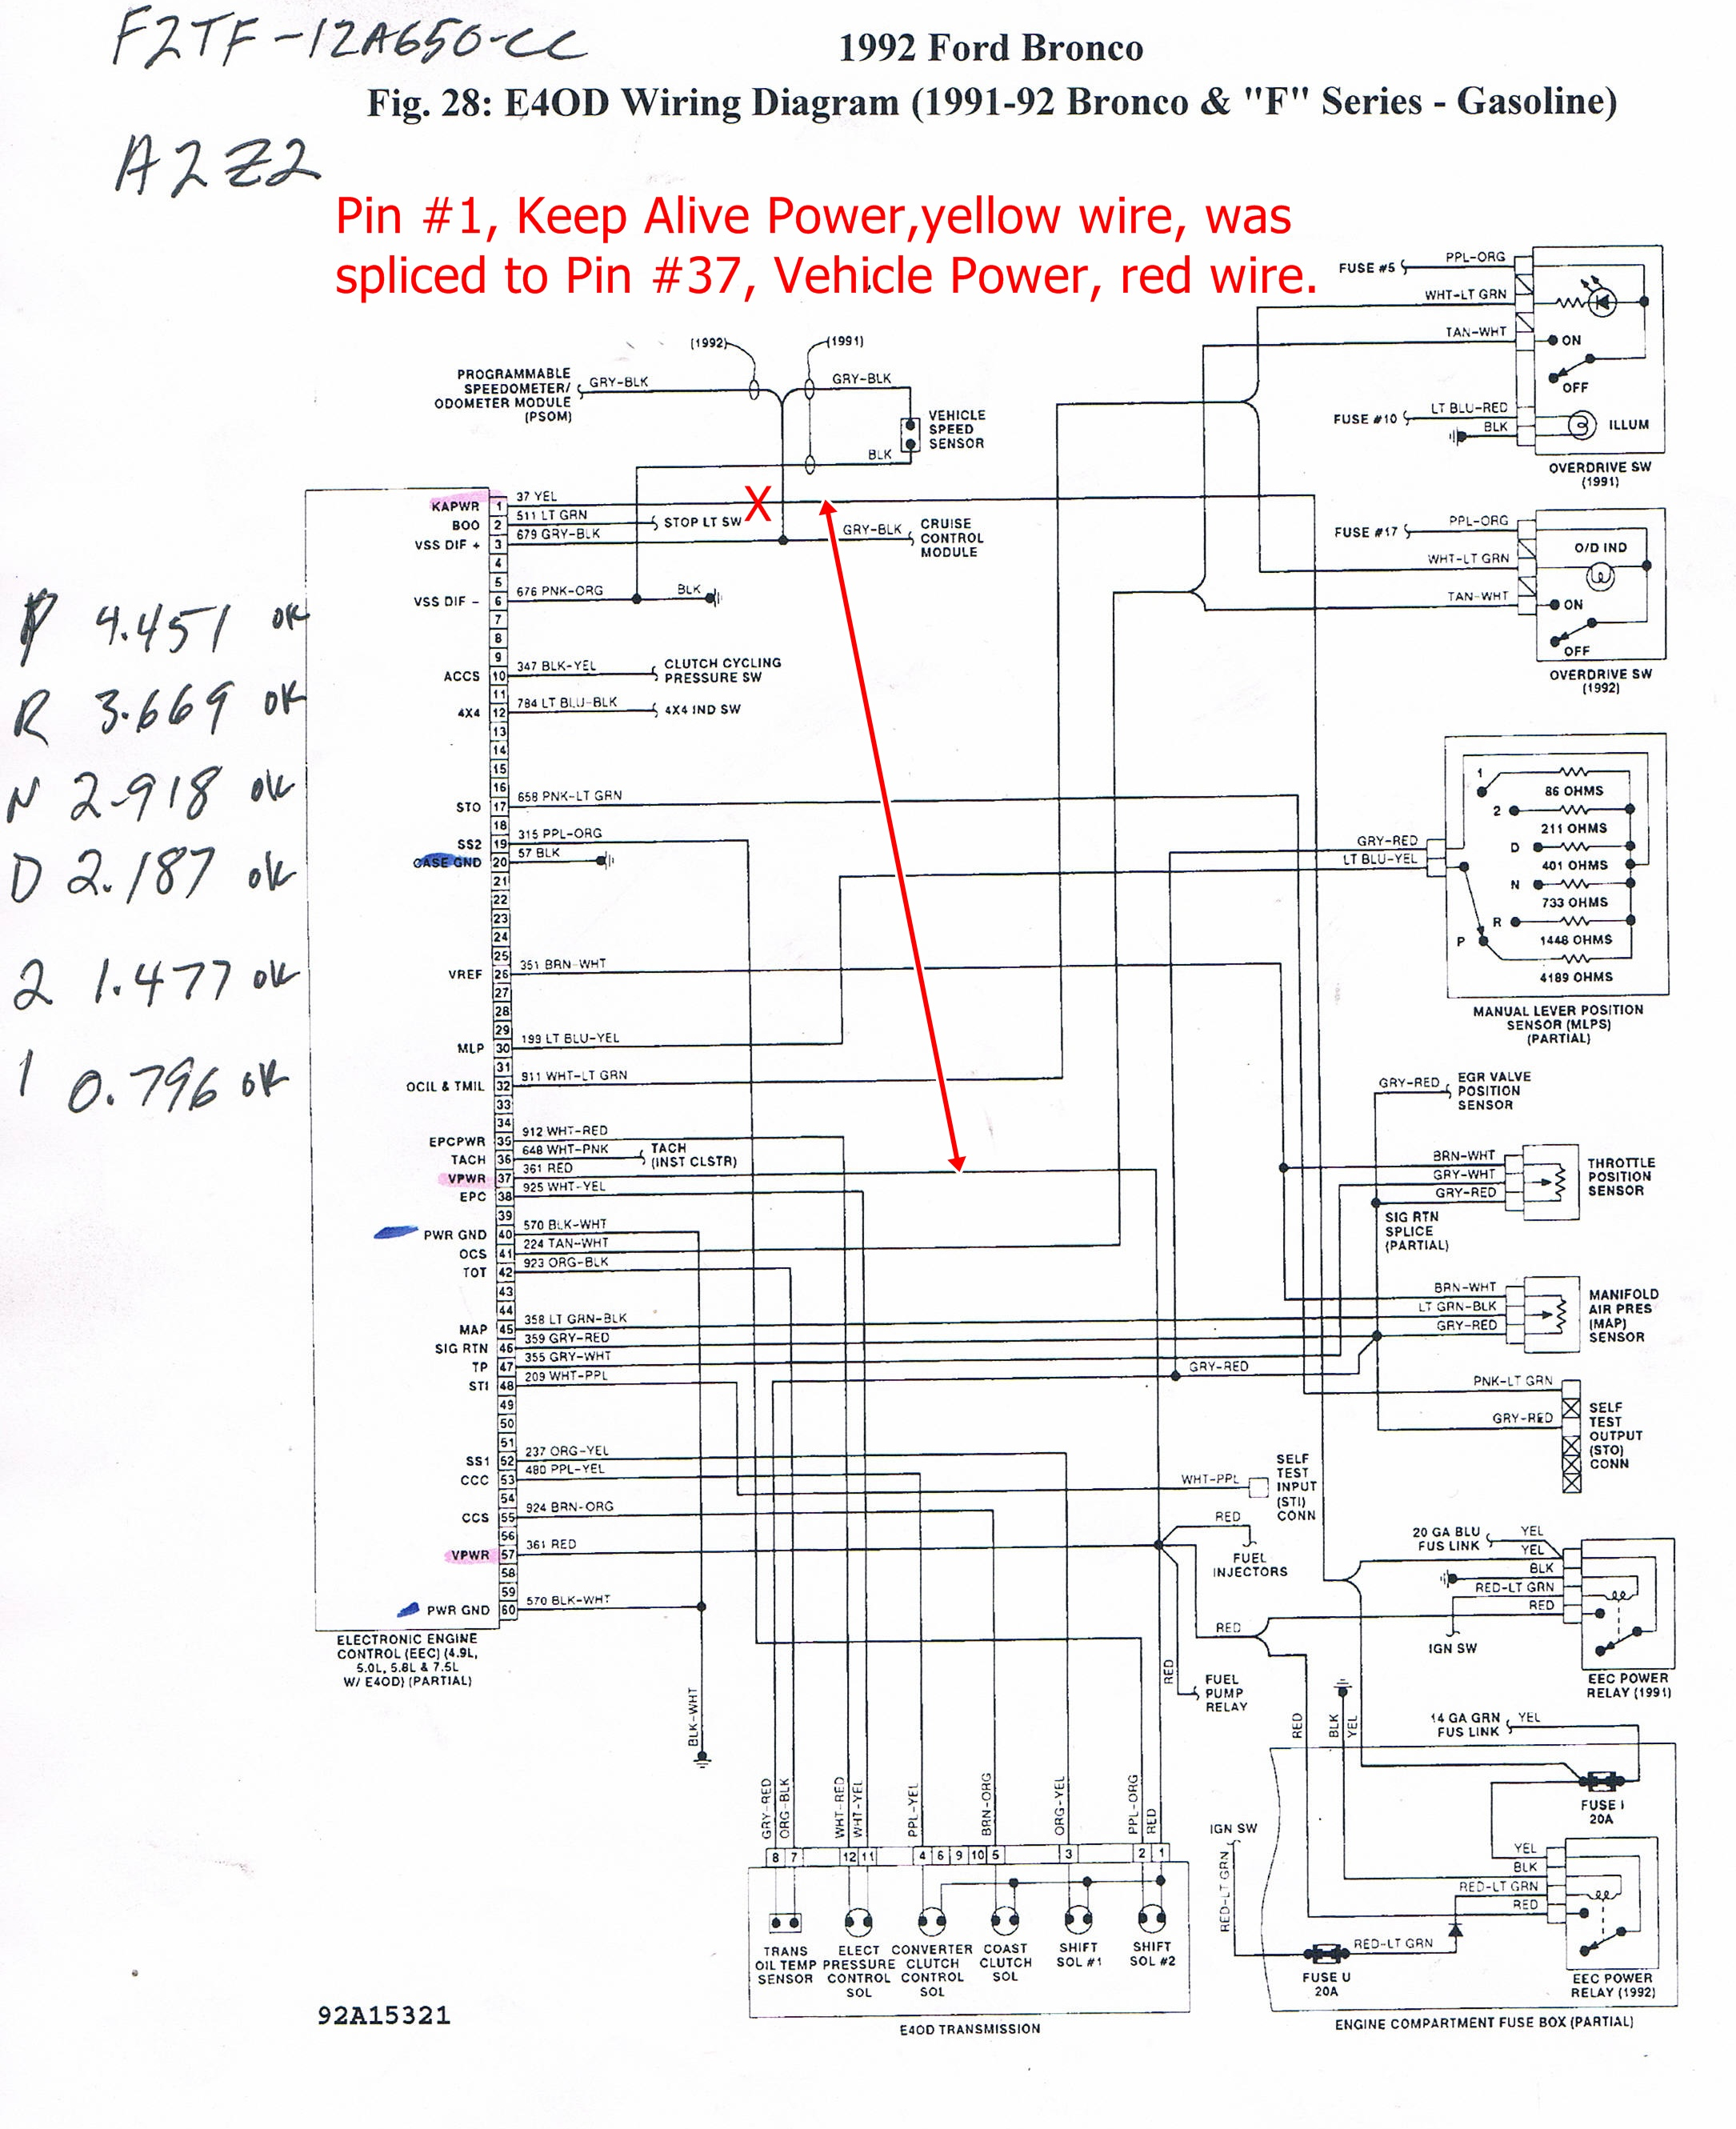 96 F150 Ecm Wiring Diagram Auto Electrical 1986 Rx7 For Headlights January 2013 U2013 The Transletter